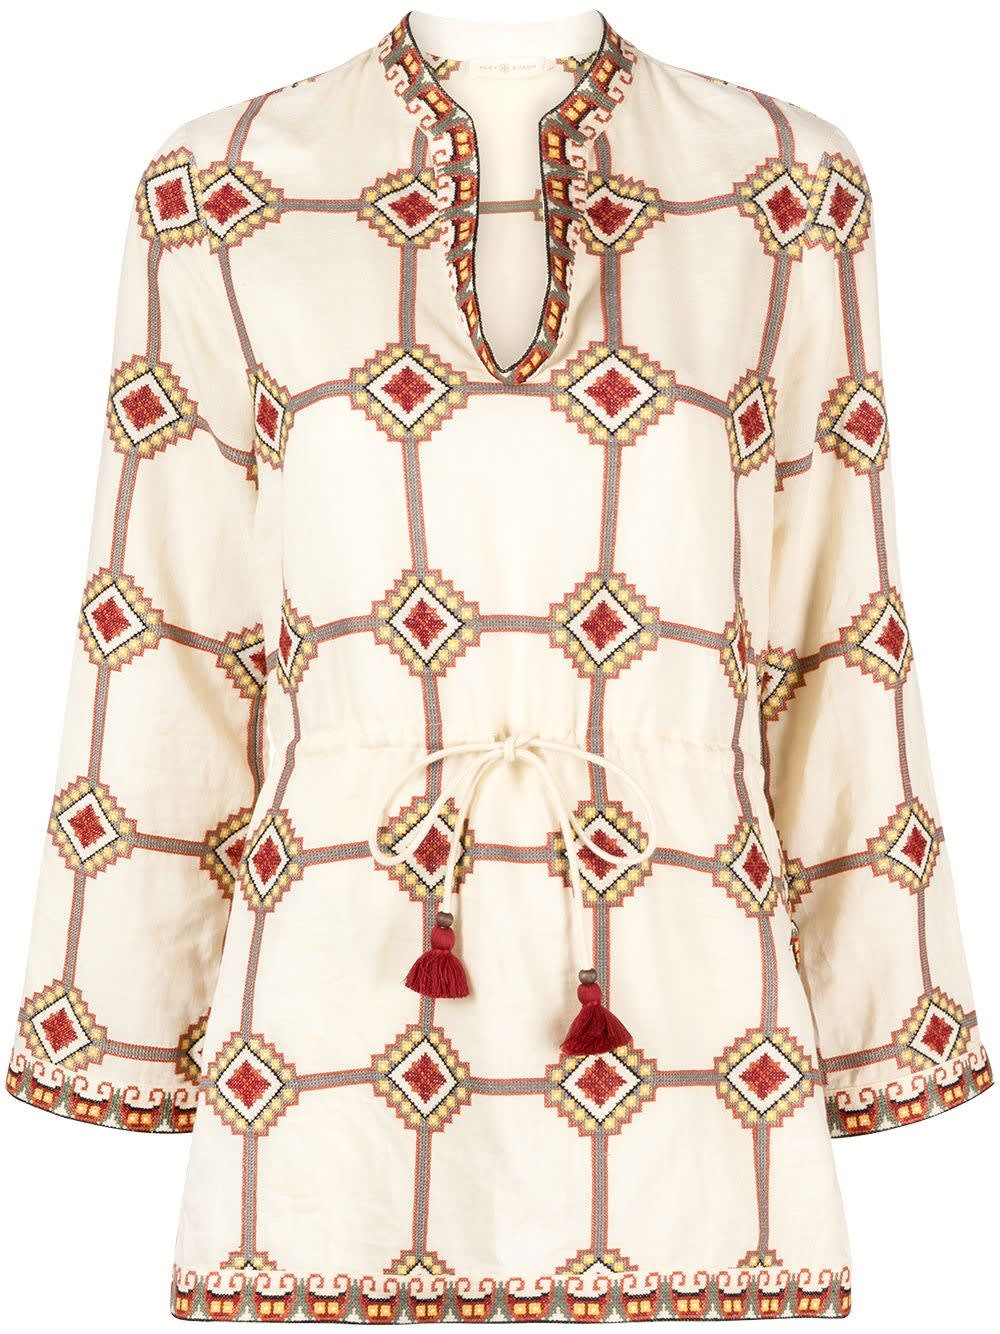 Tory Burch EMBROIDERED BLOUSE WITH GEOMETRIC PRINT